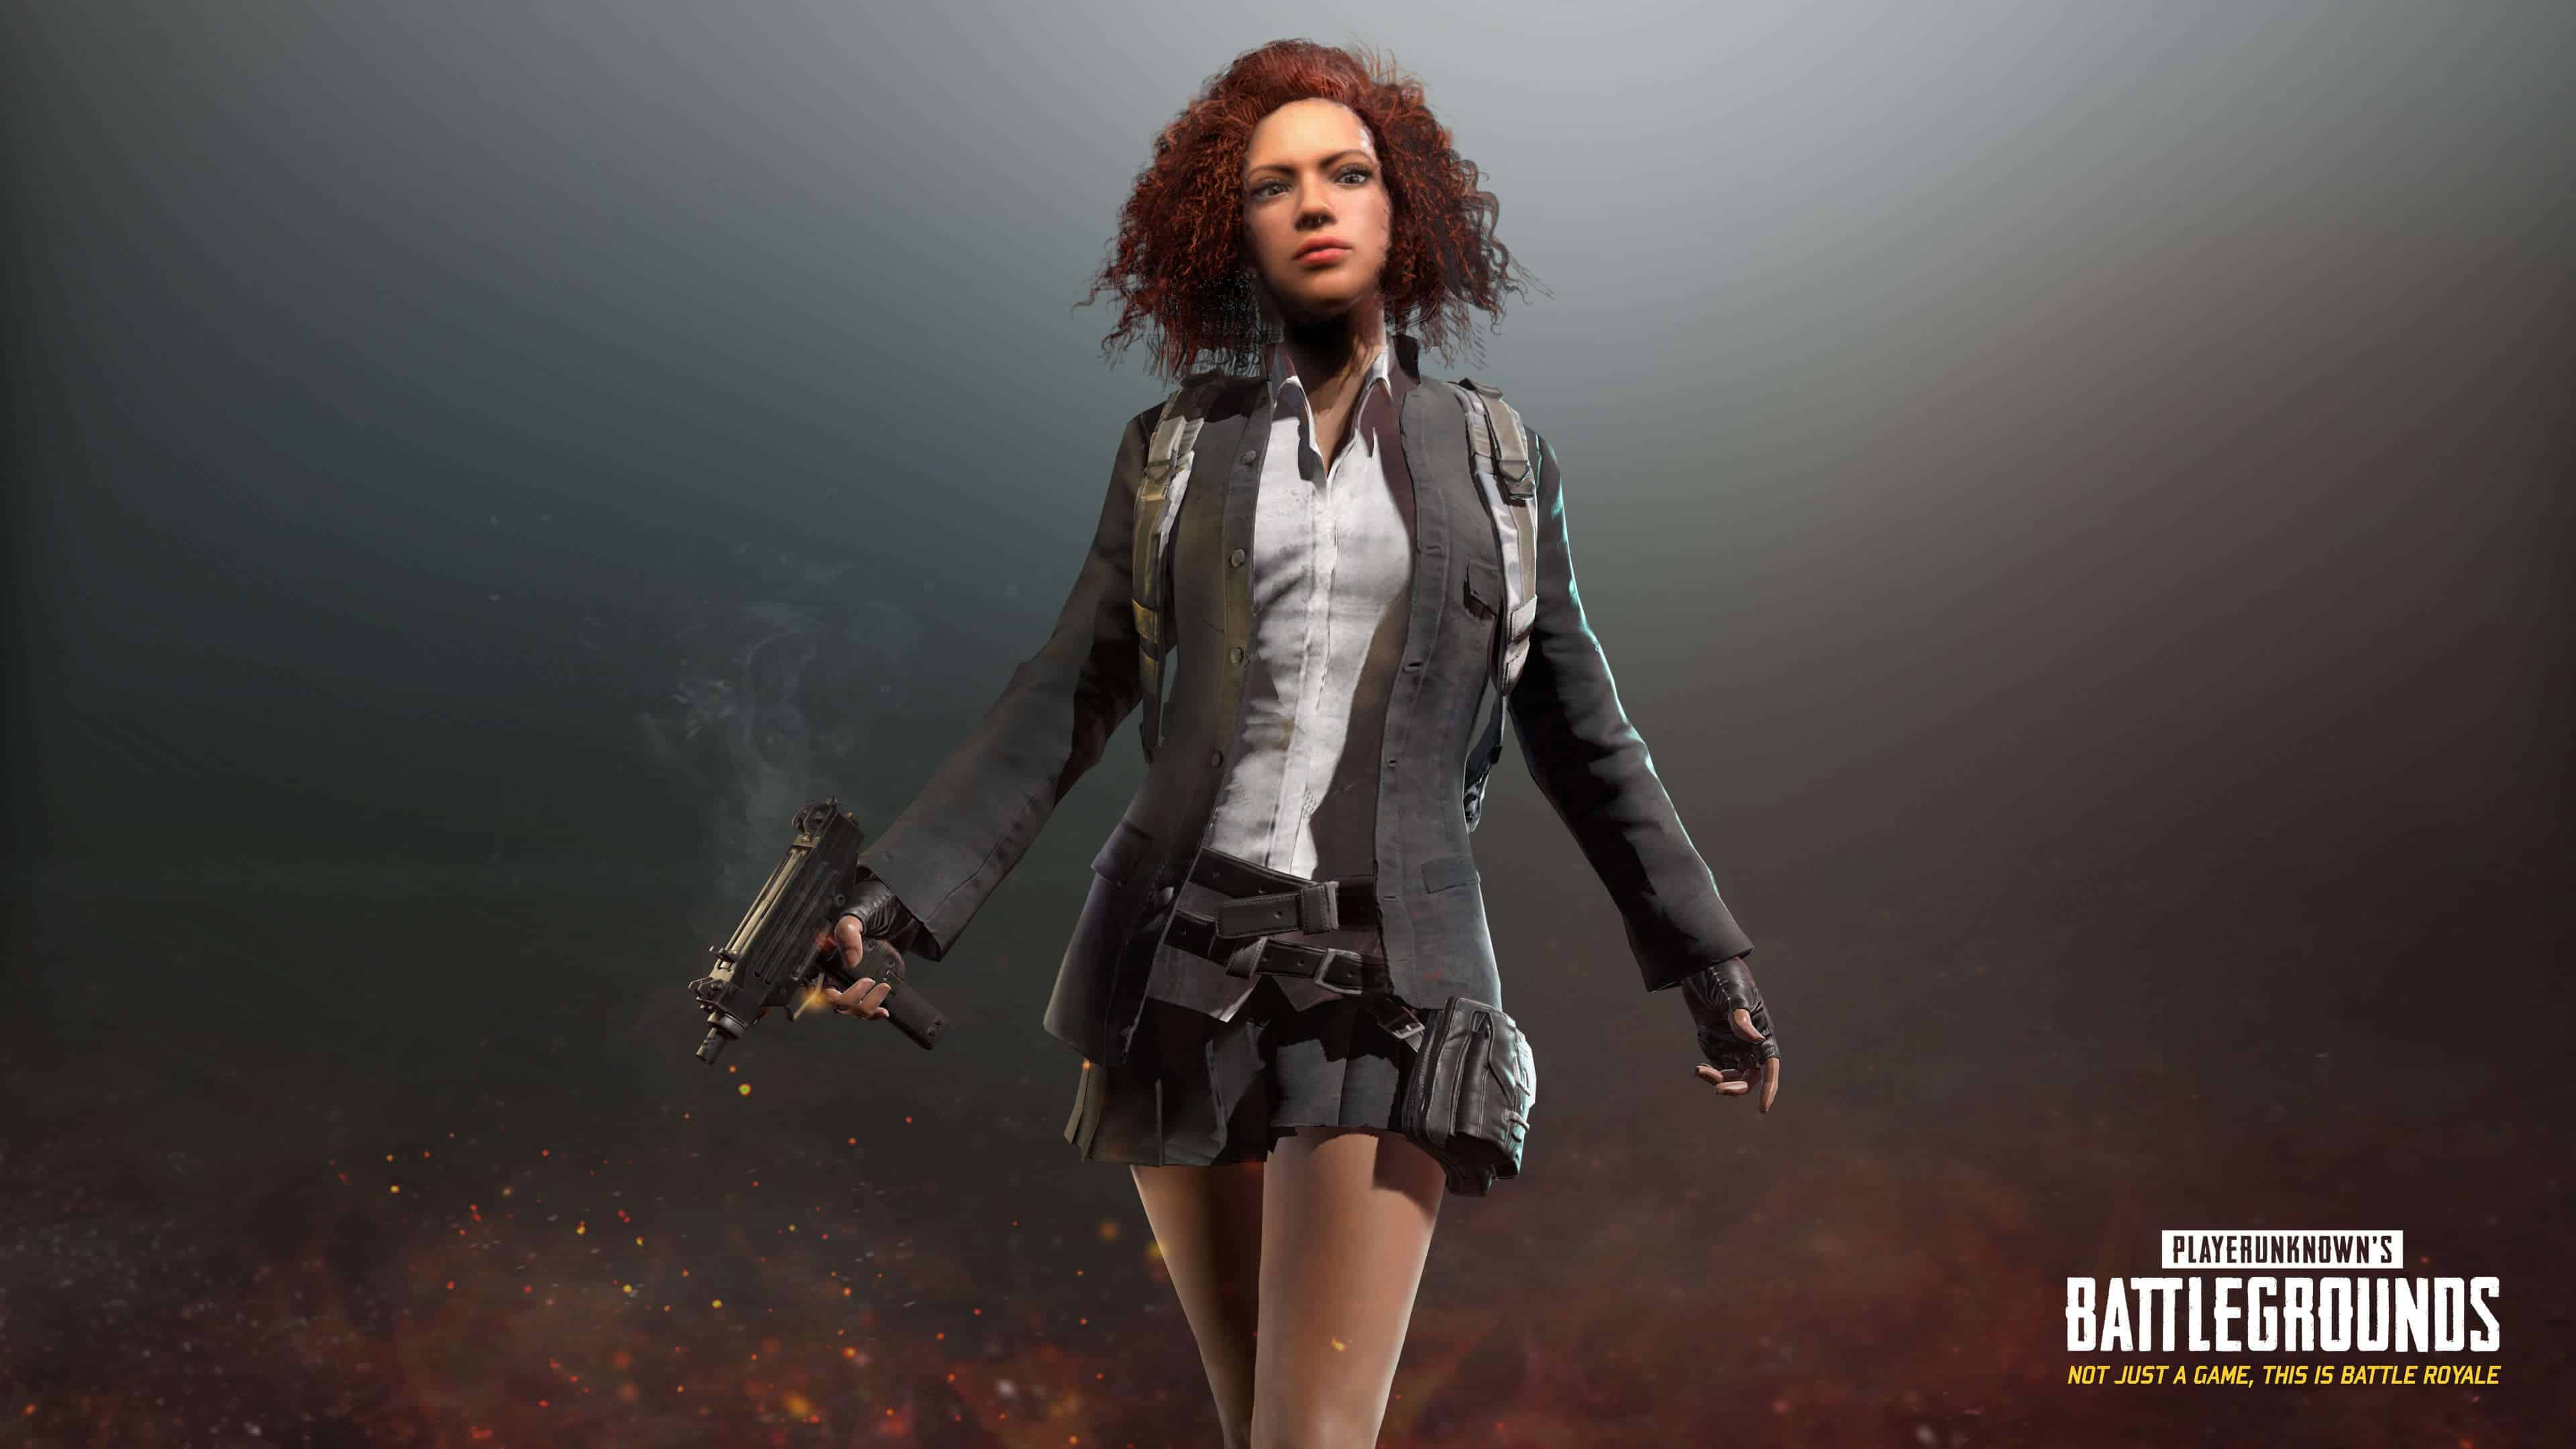 PUBG Player Unknown Battlegrounds Black School Uniform Set UHD 4K